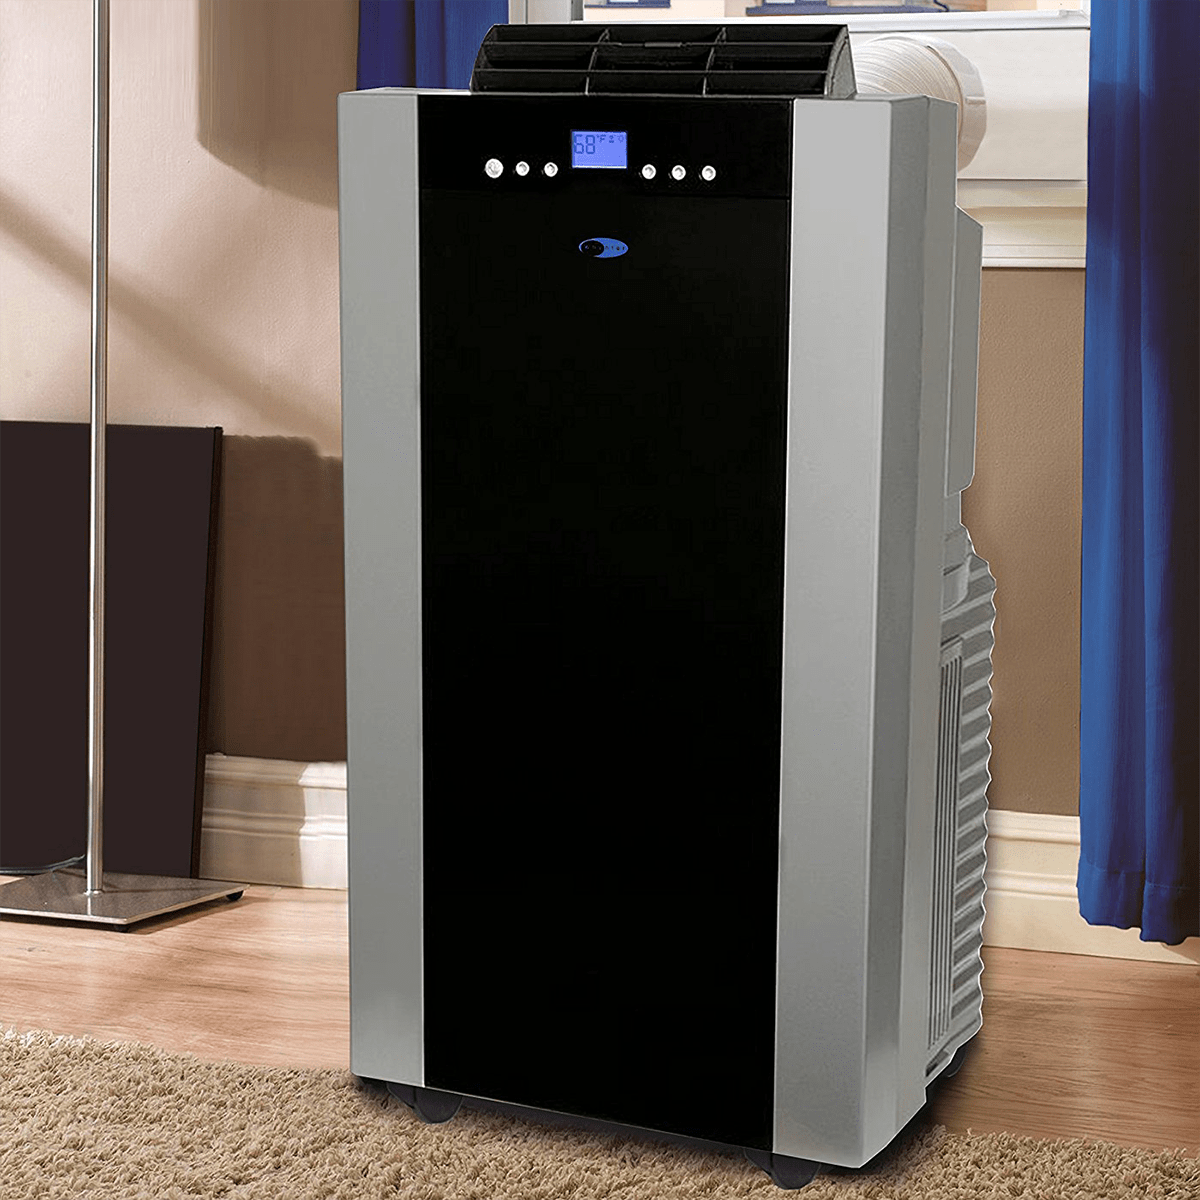 Best portable air conditioners for sliding windows